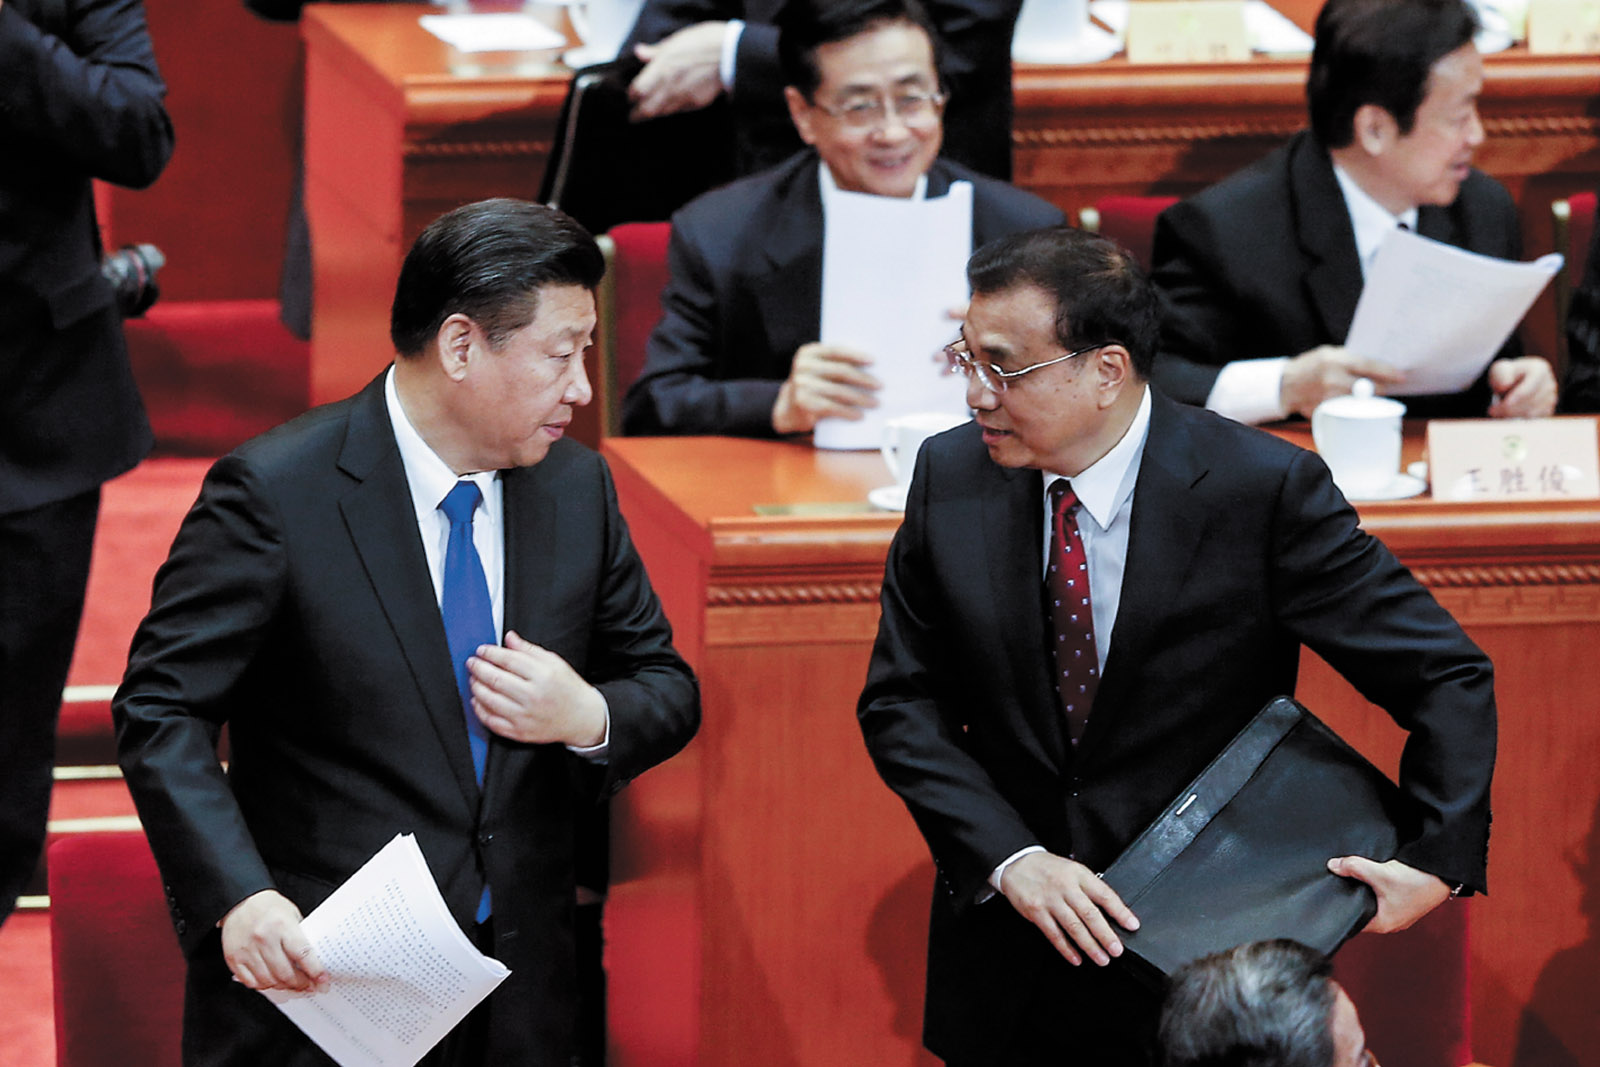 President Xi Jinping and Premier Li Keqiang at the opening session of the Chinese People's Political Consultative Conference, Beijing, March 2016